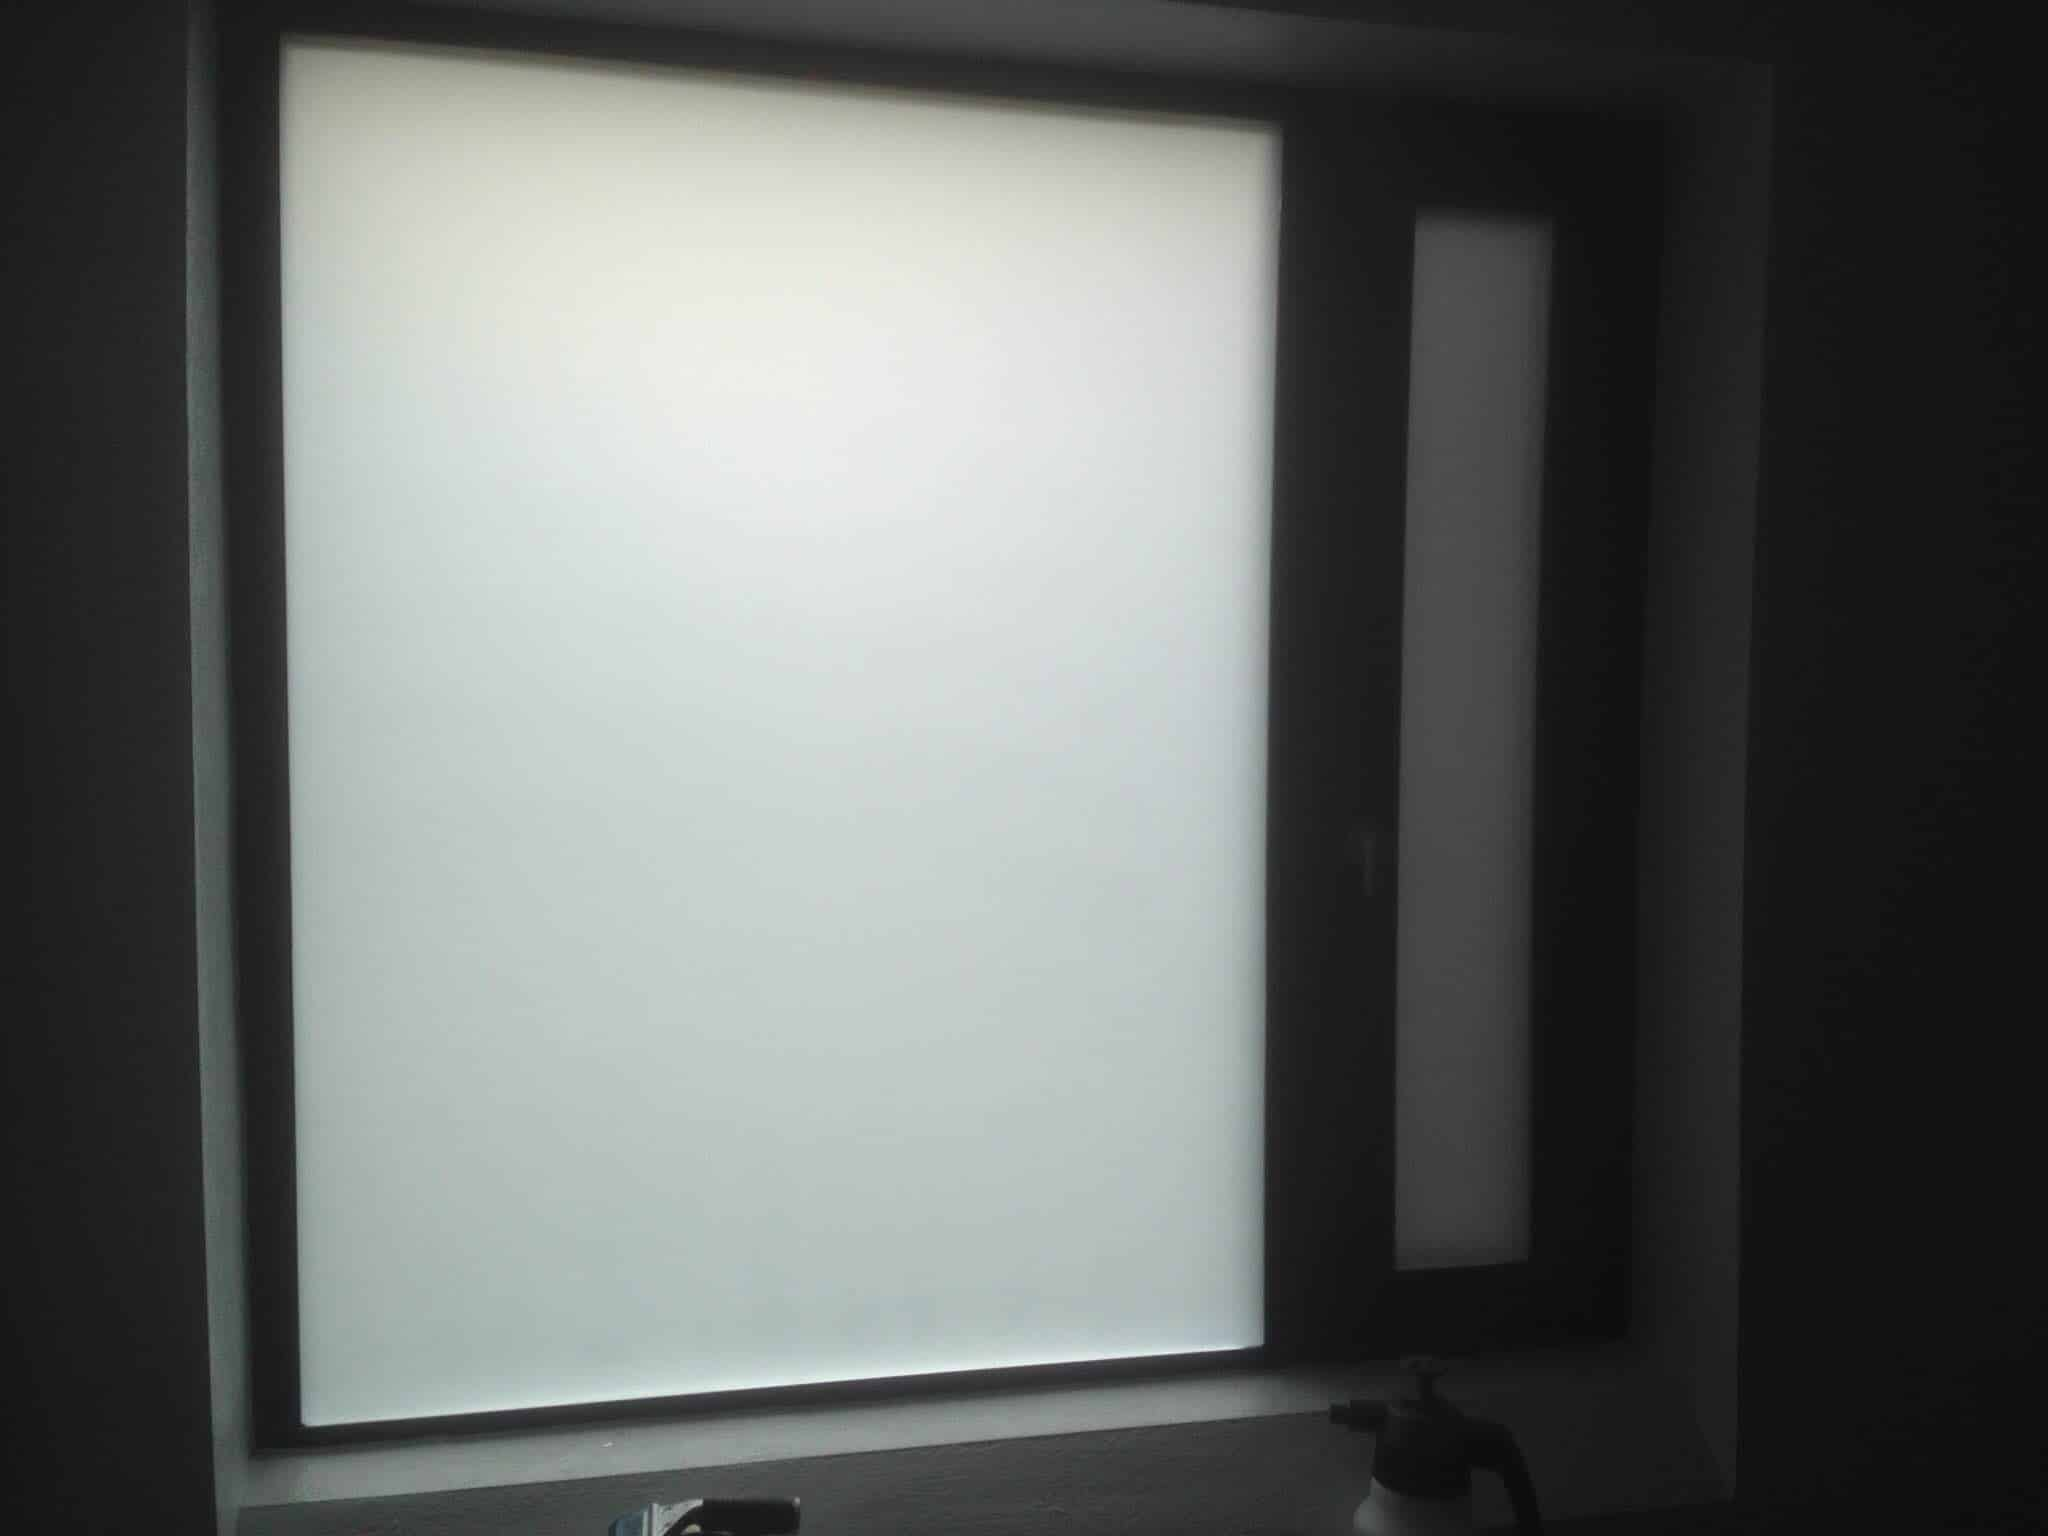 A full frosted window, for use in bathrooms, kitchen areas and places that need full frosting of the glass for full privacy day and night but still letting the light in.